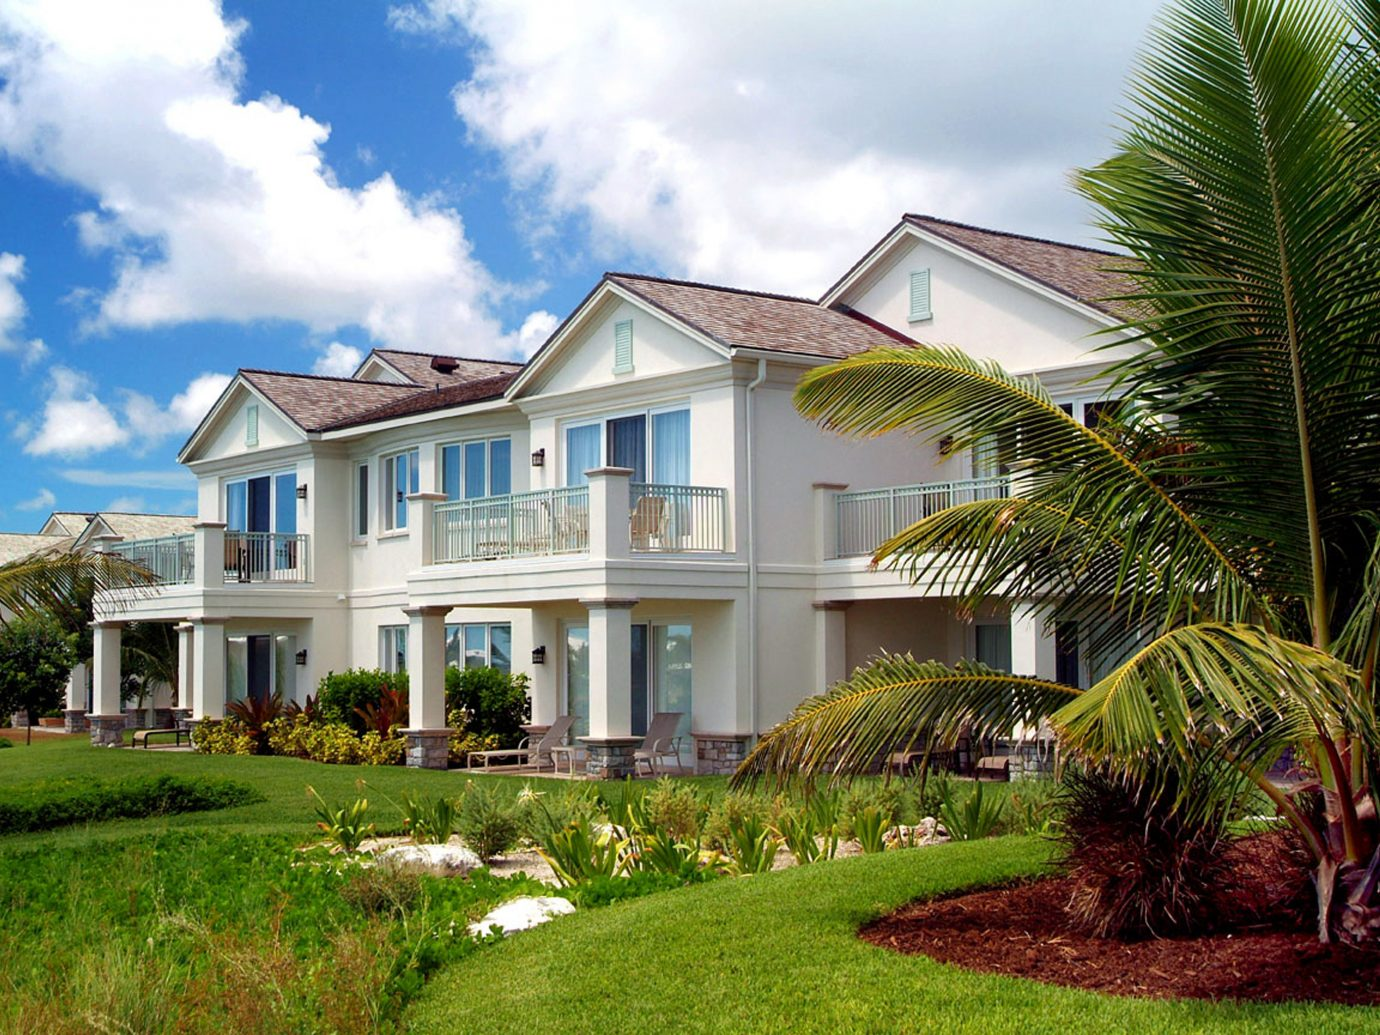 Buildings Grounds Honeymoon Hotels Luxury Resort Romance grass sky outdoor house property home estate building residential area real estate condominium neighbourhood mansion facade Villa backyard lawn cottage suburb farmhouse plantation residential lush Garden